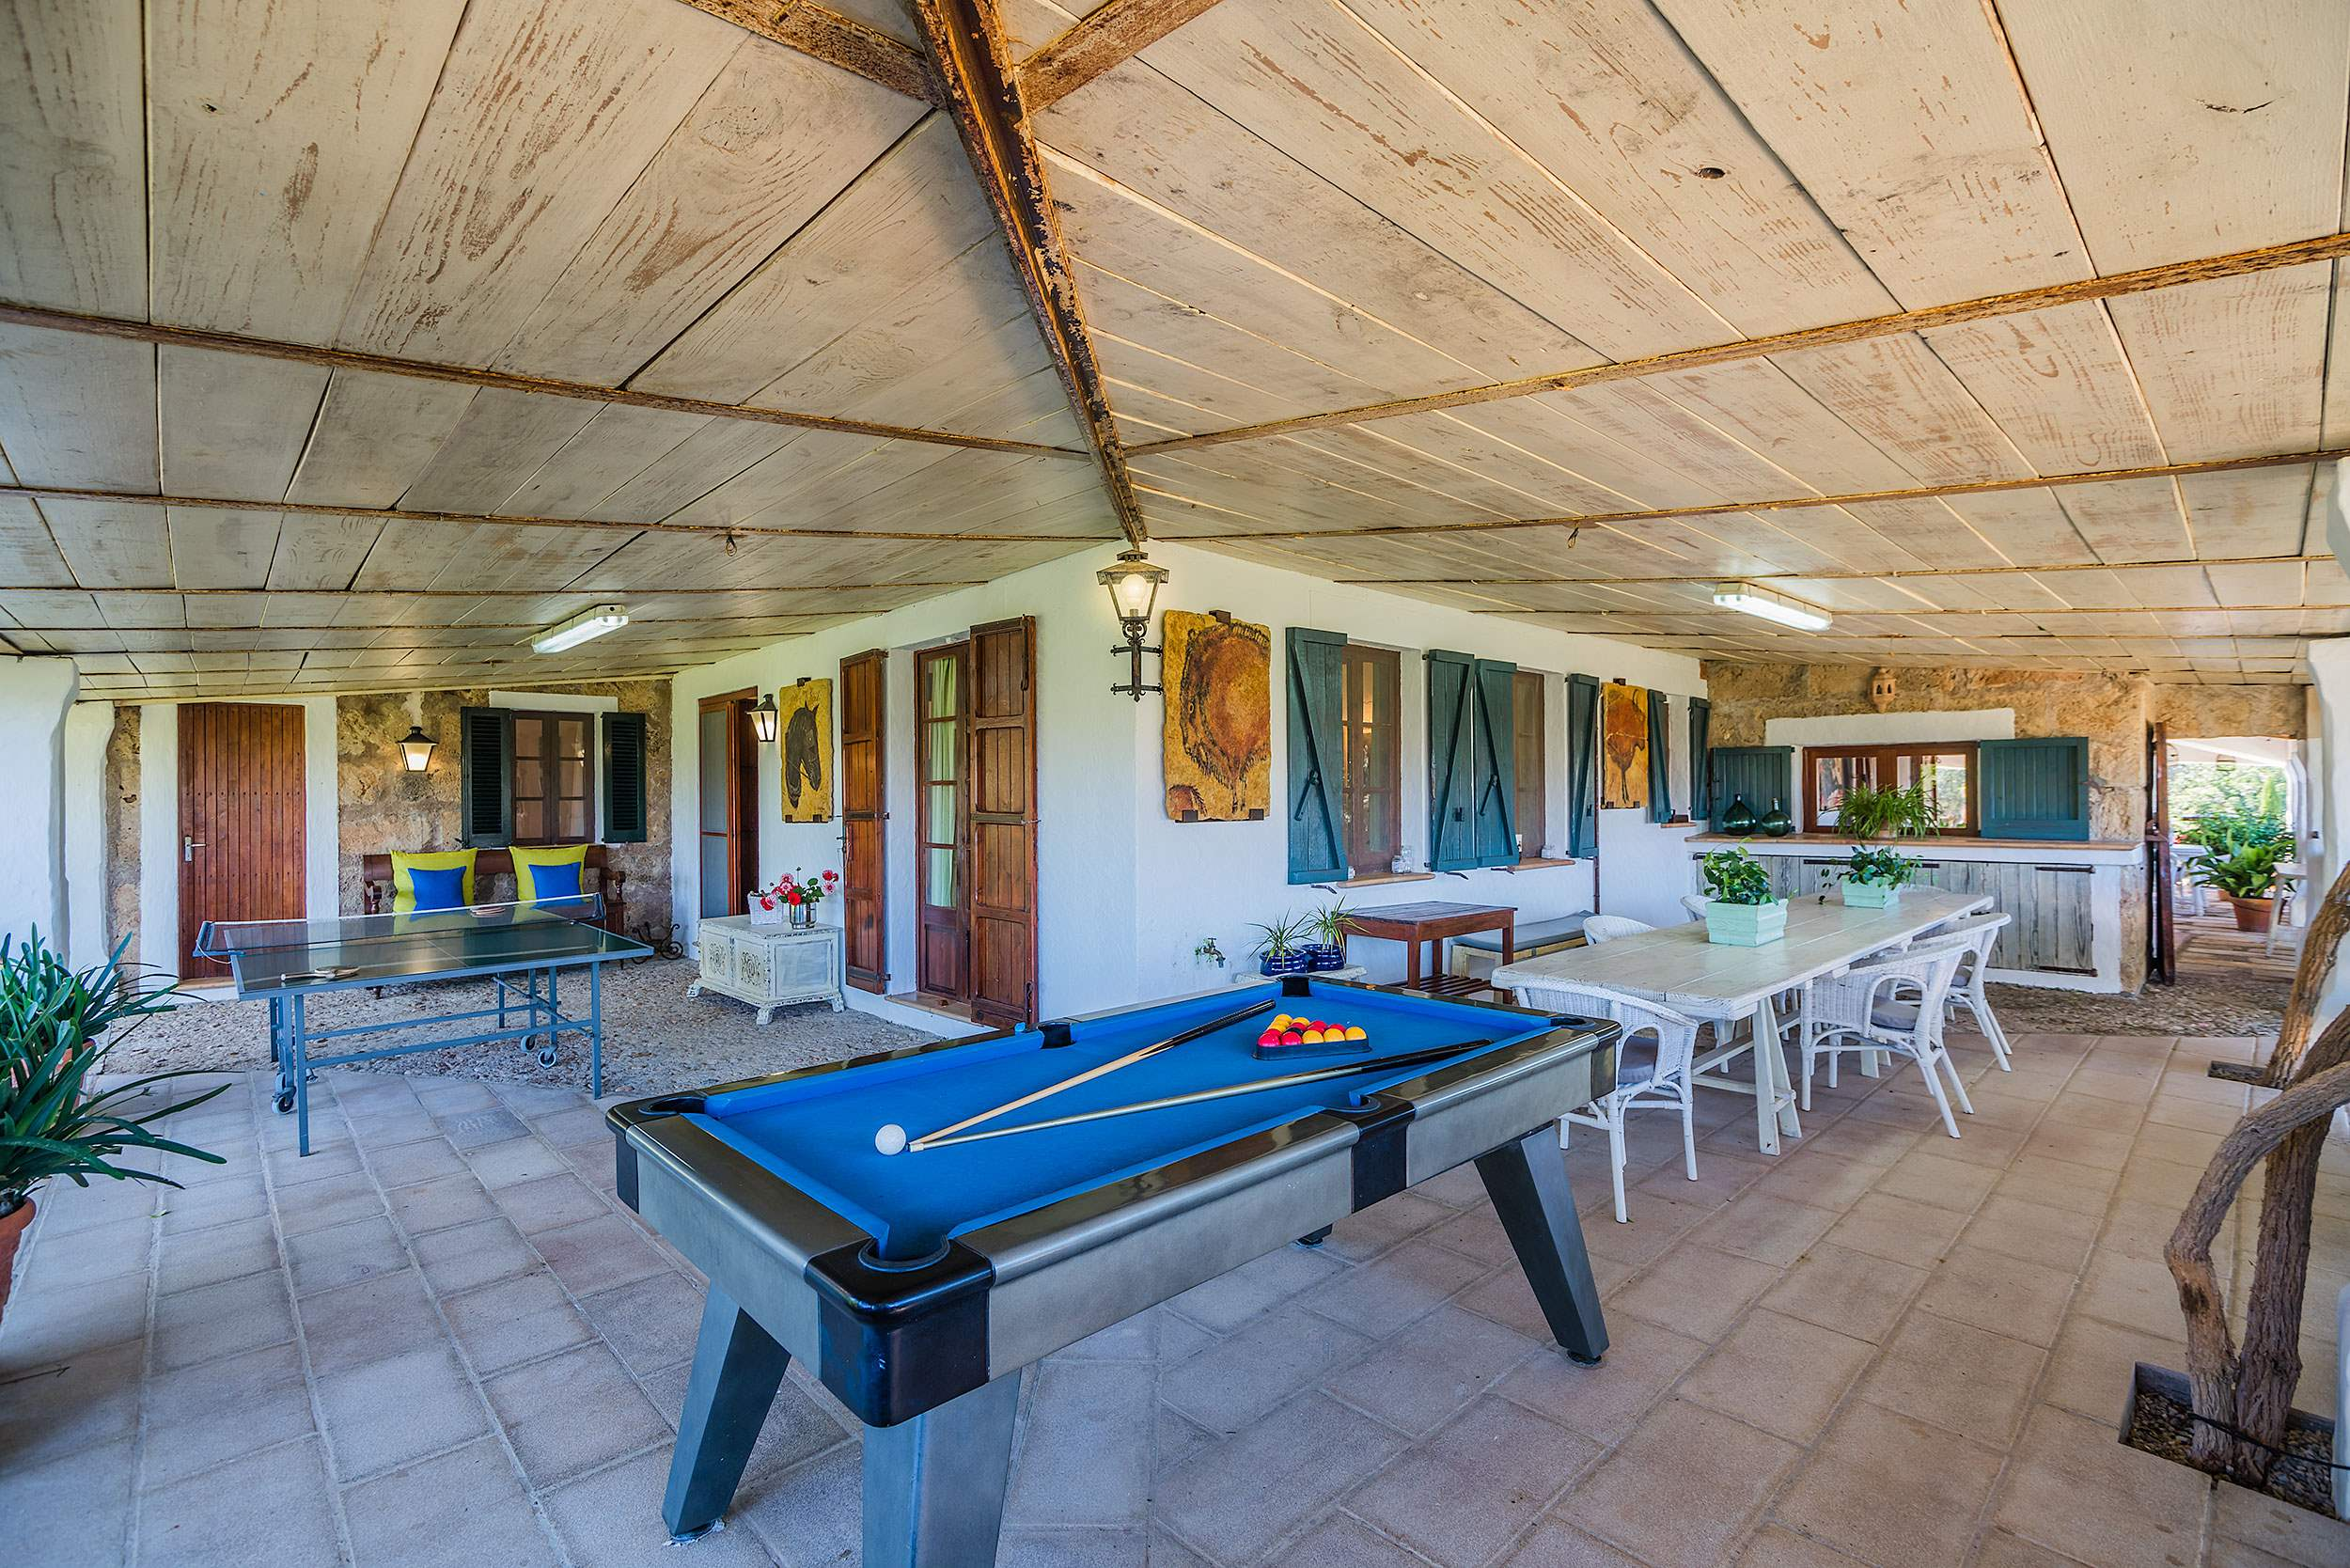 La Rota, 9 - 12 persons, 6 bedroom villa in Pollensa & Puerto Pollensa , Majorca Photo #10